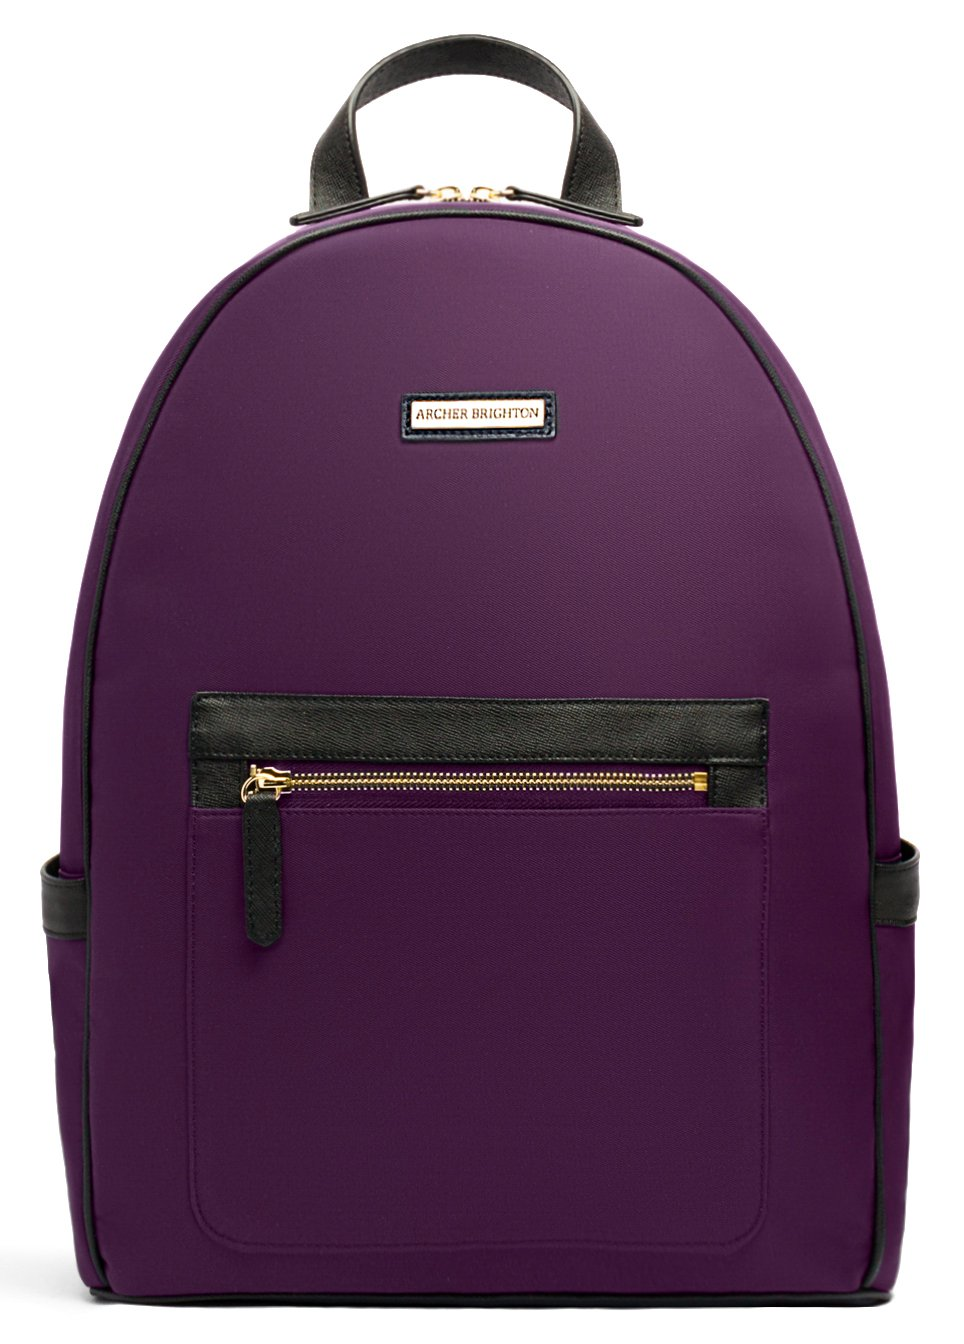 """Archer Brighton Cara Laptop Backpack, Women's 13"""" Business Travel Leather Canvas Multipurpose Backpack (Mulberry Purple) by Archer Brighton"""